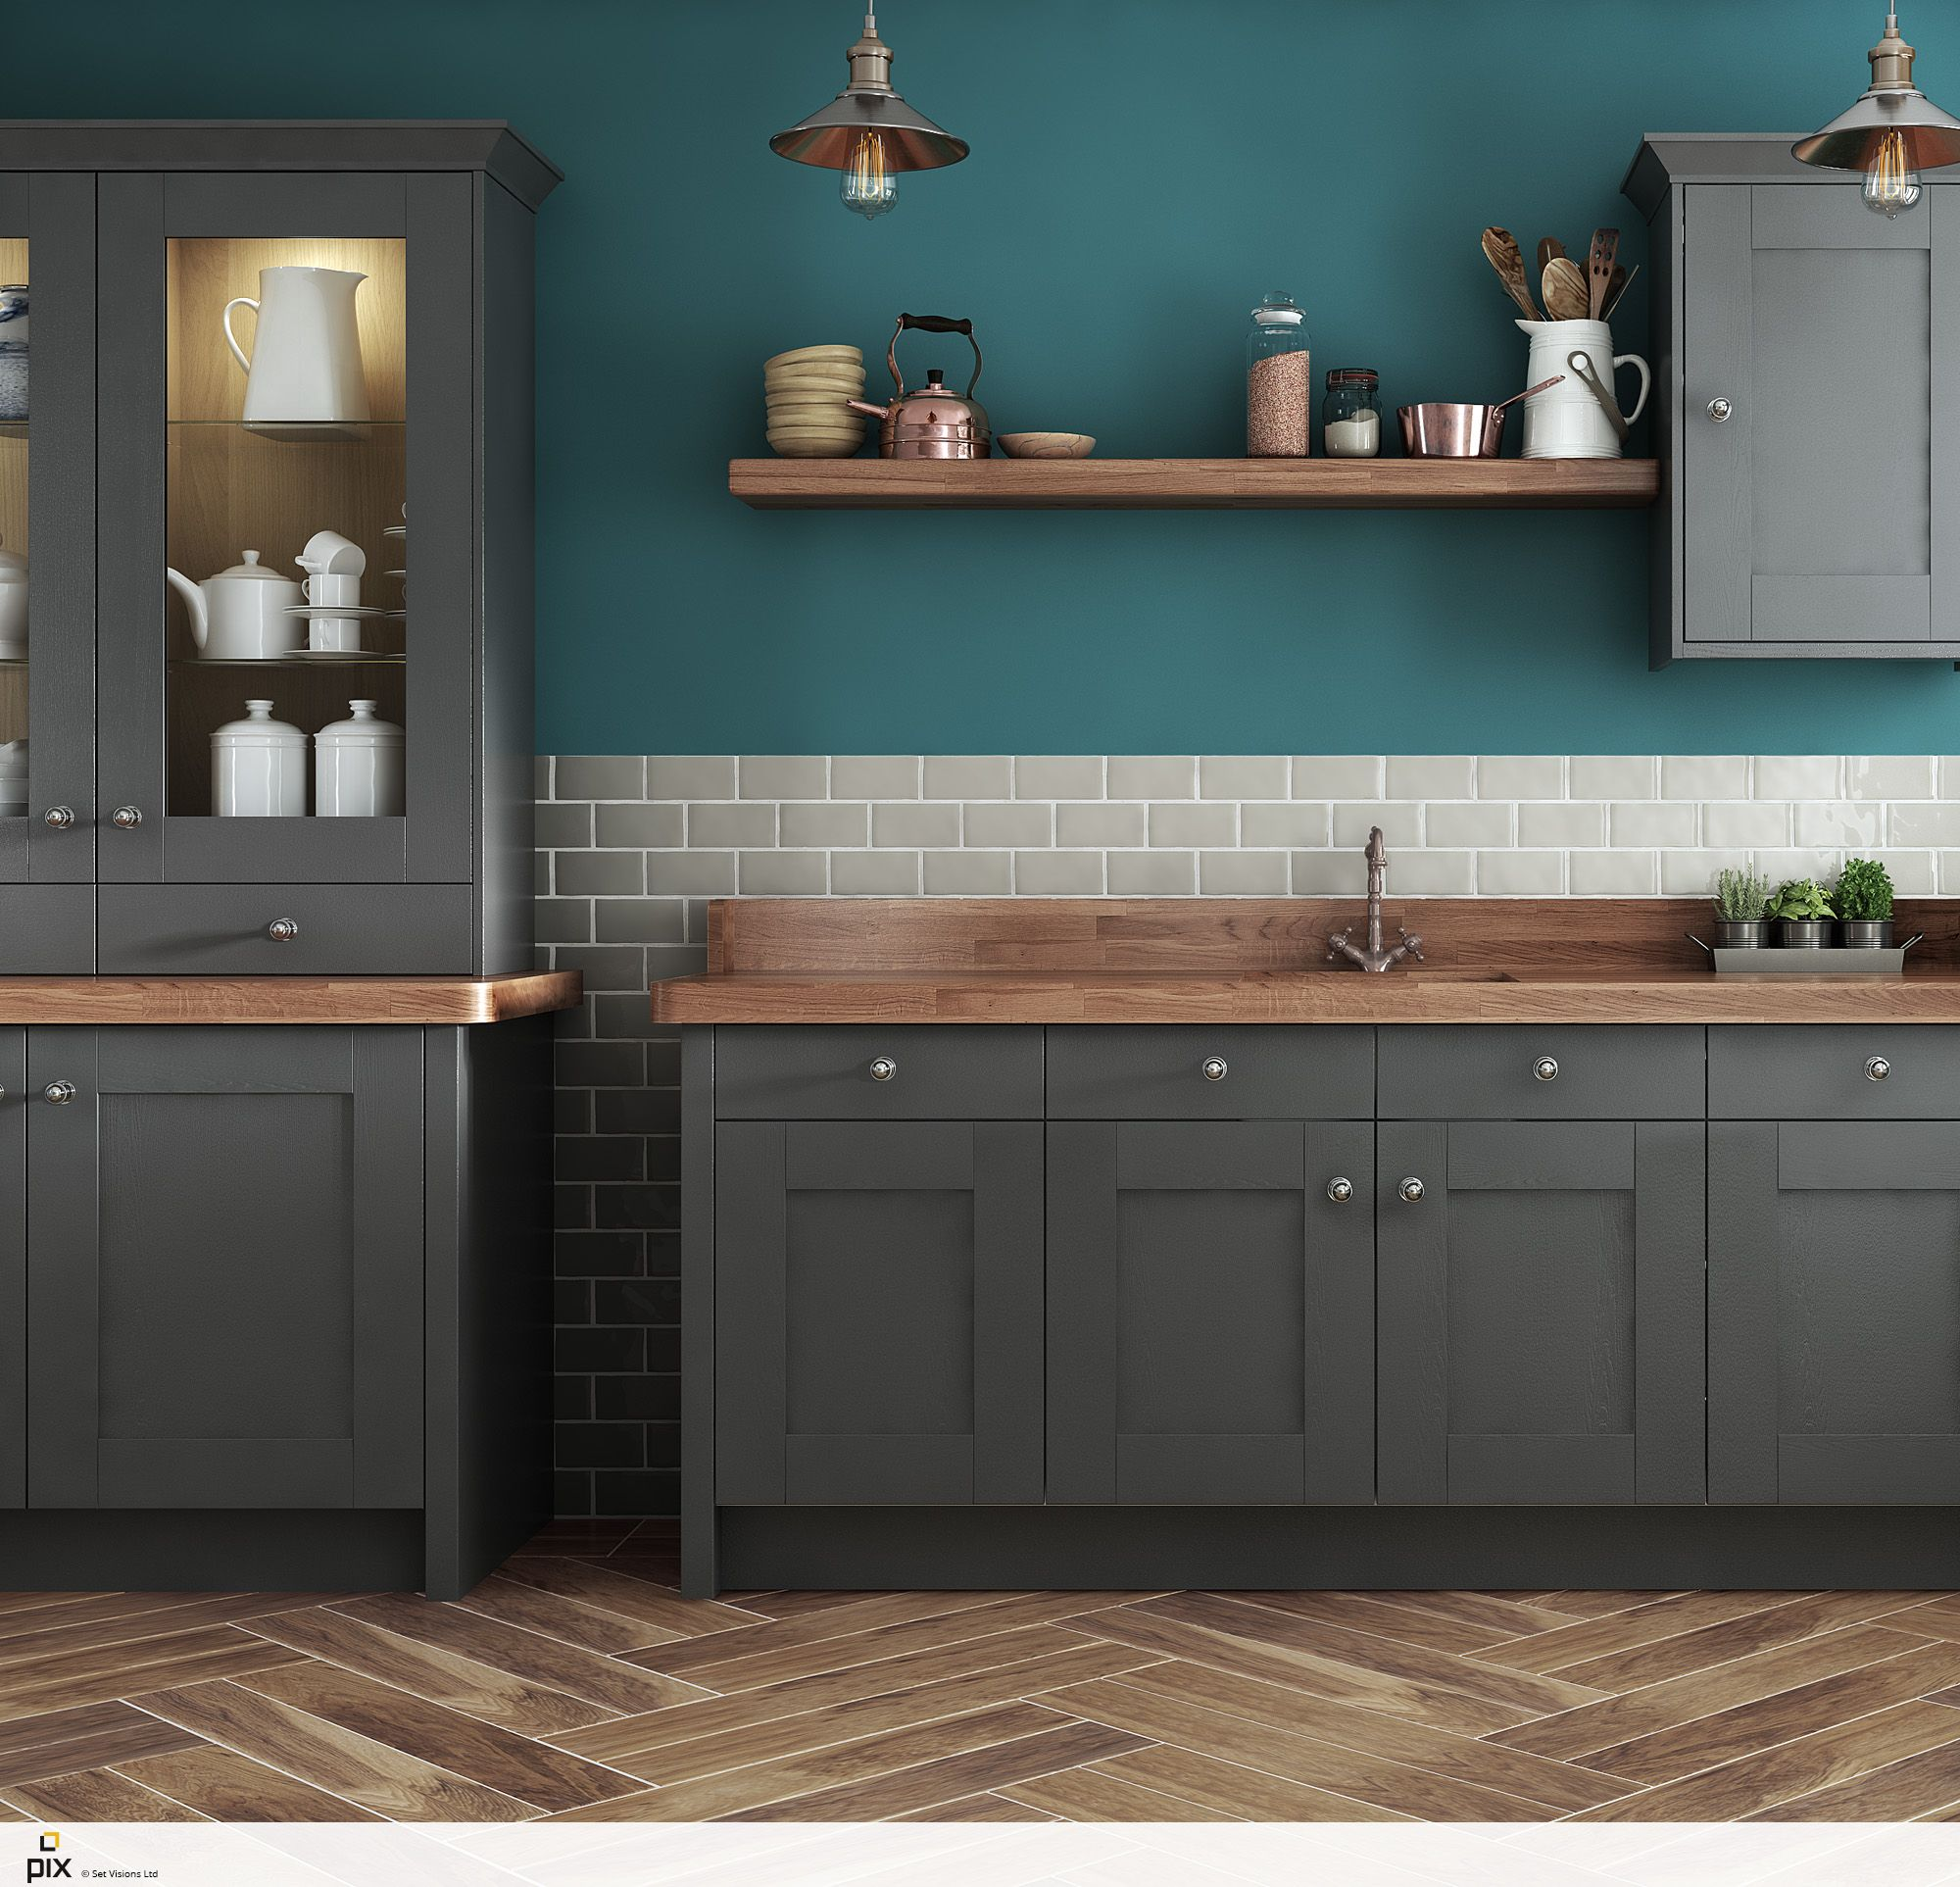 A modern classic shaker kitchen is influenced by the